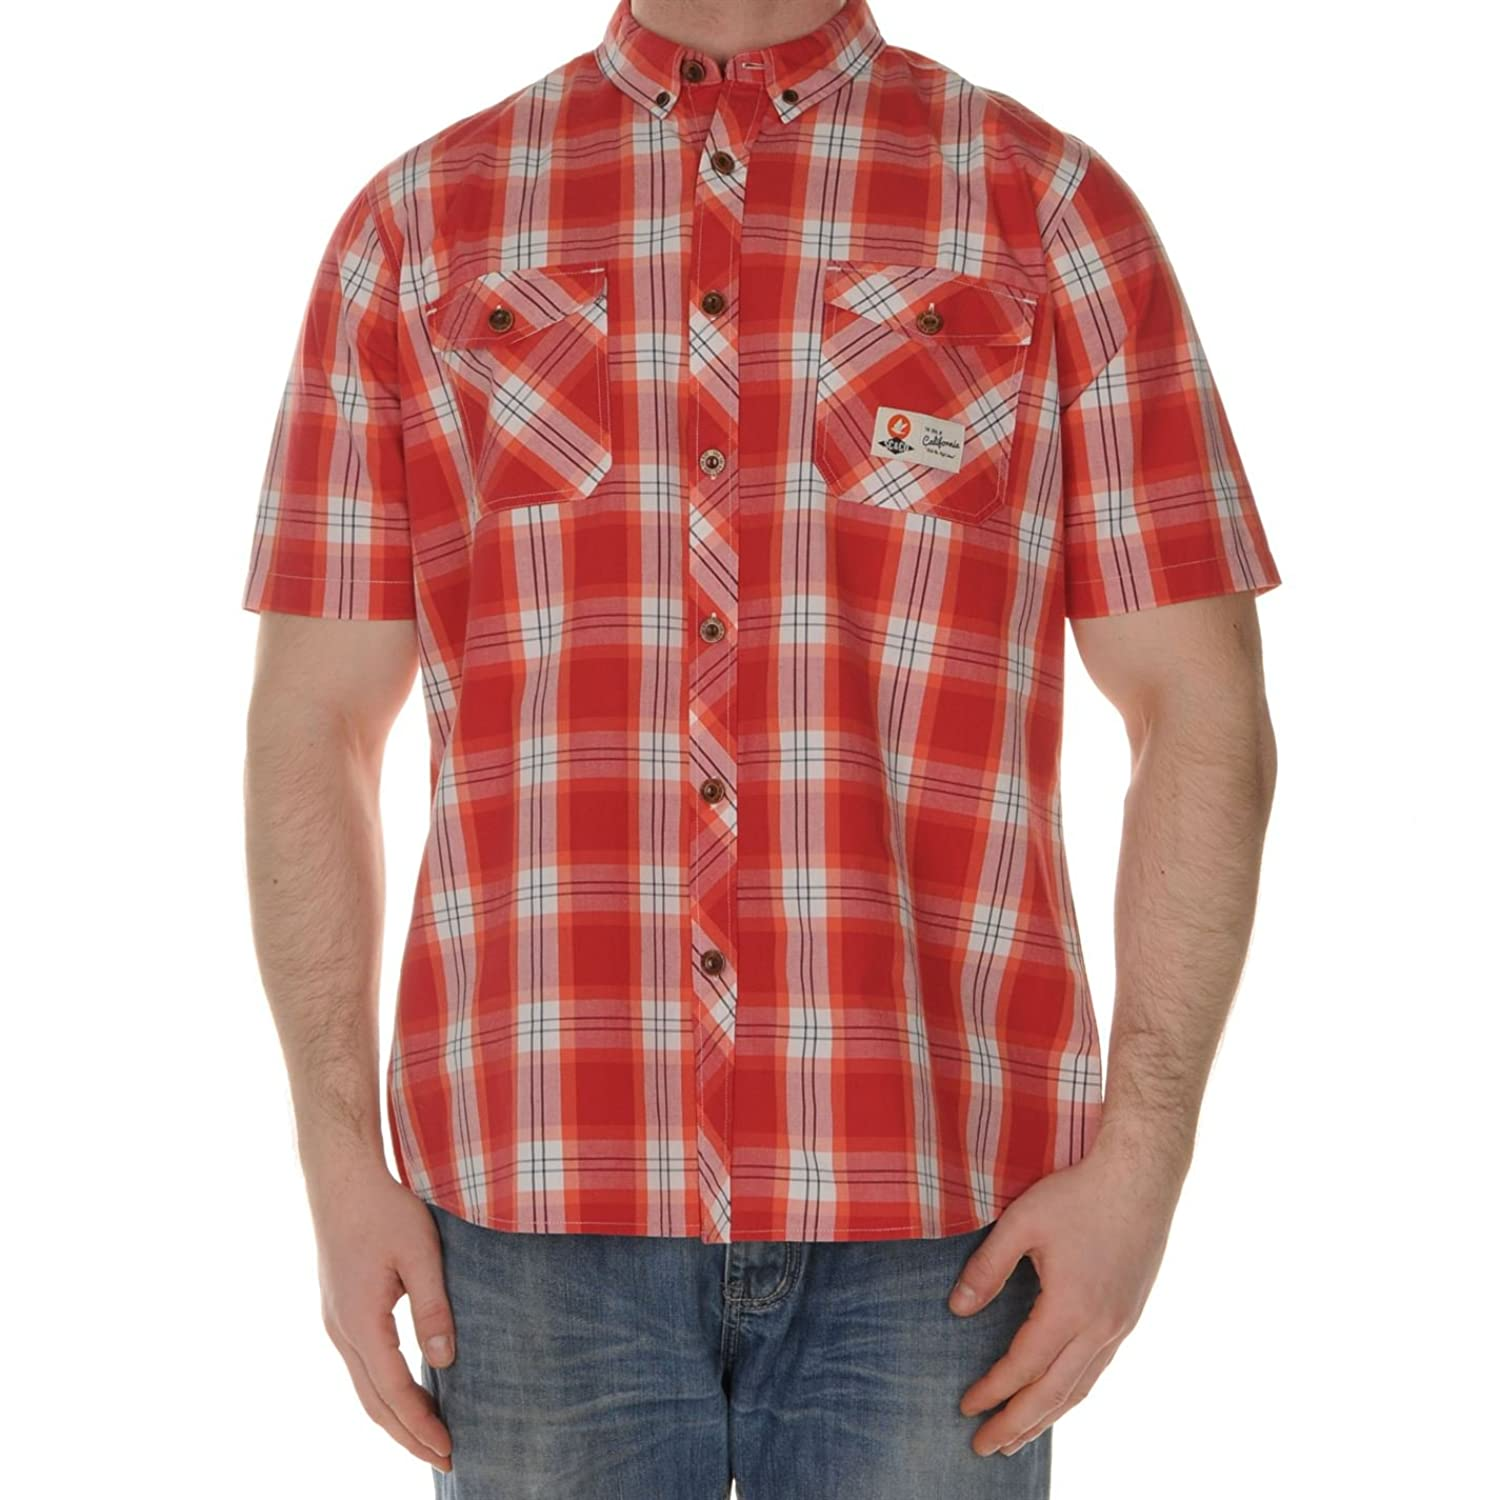 Soulcal Mens Newport Shirt Tee Top Short Sleeves Button Down Checked Casual